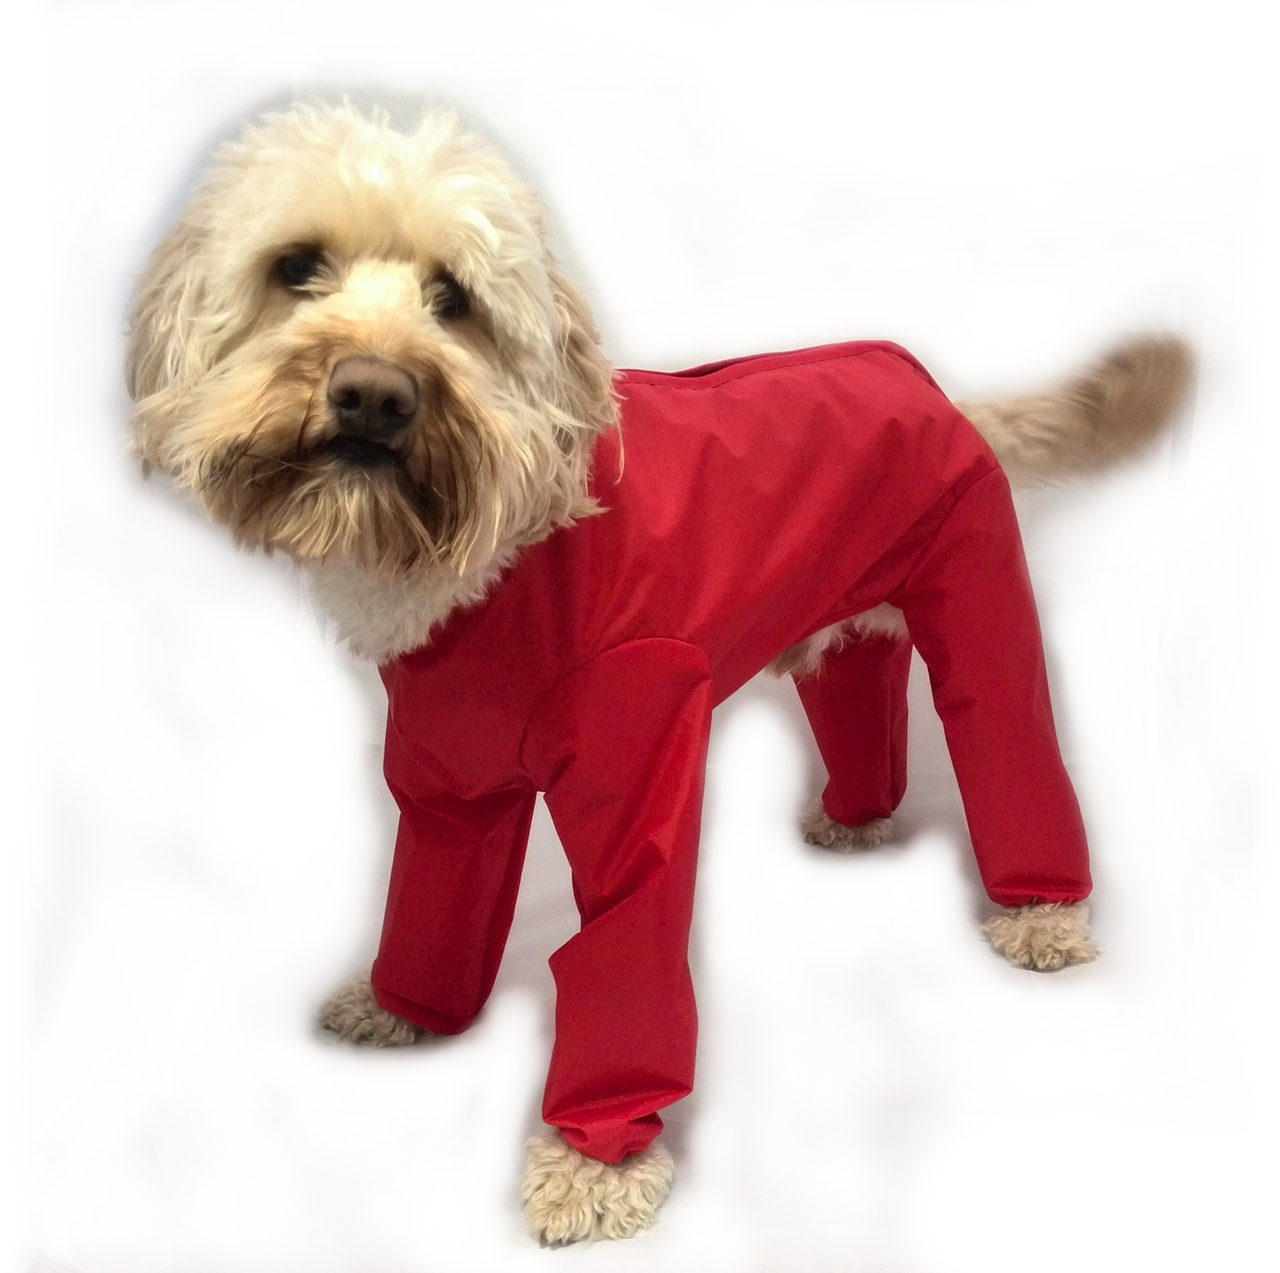 Trouser Suit Waterproof Dog Coat With Legs